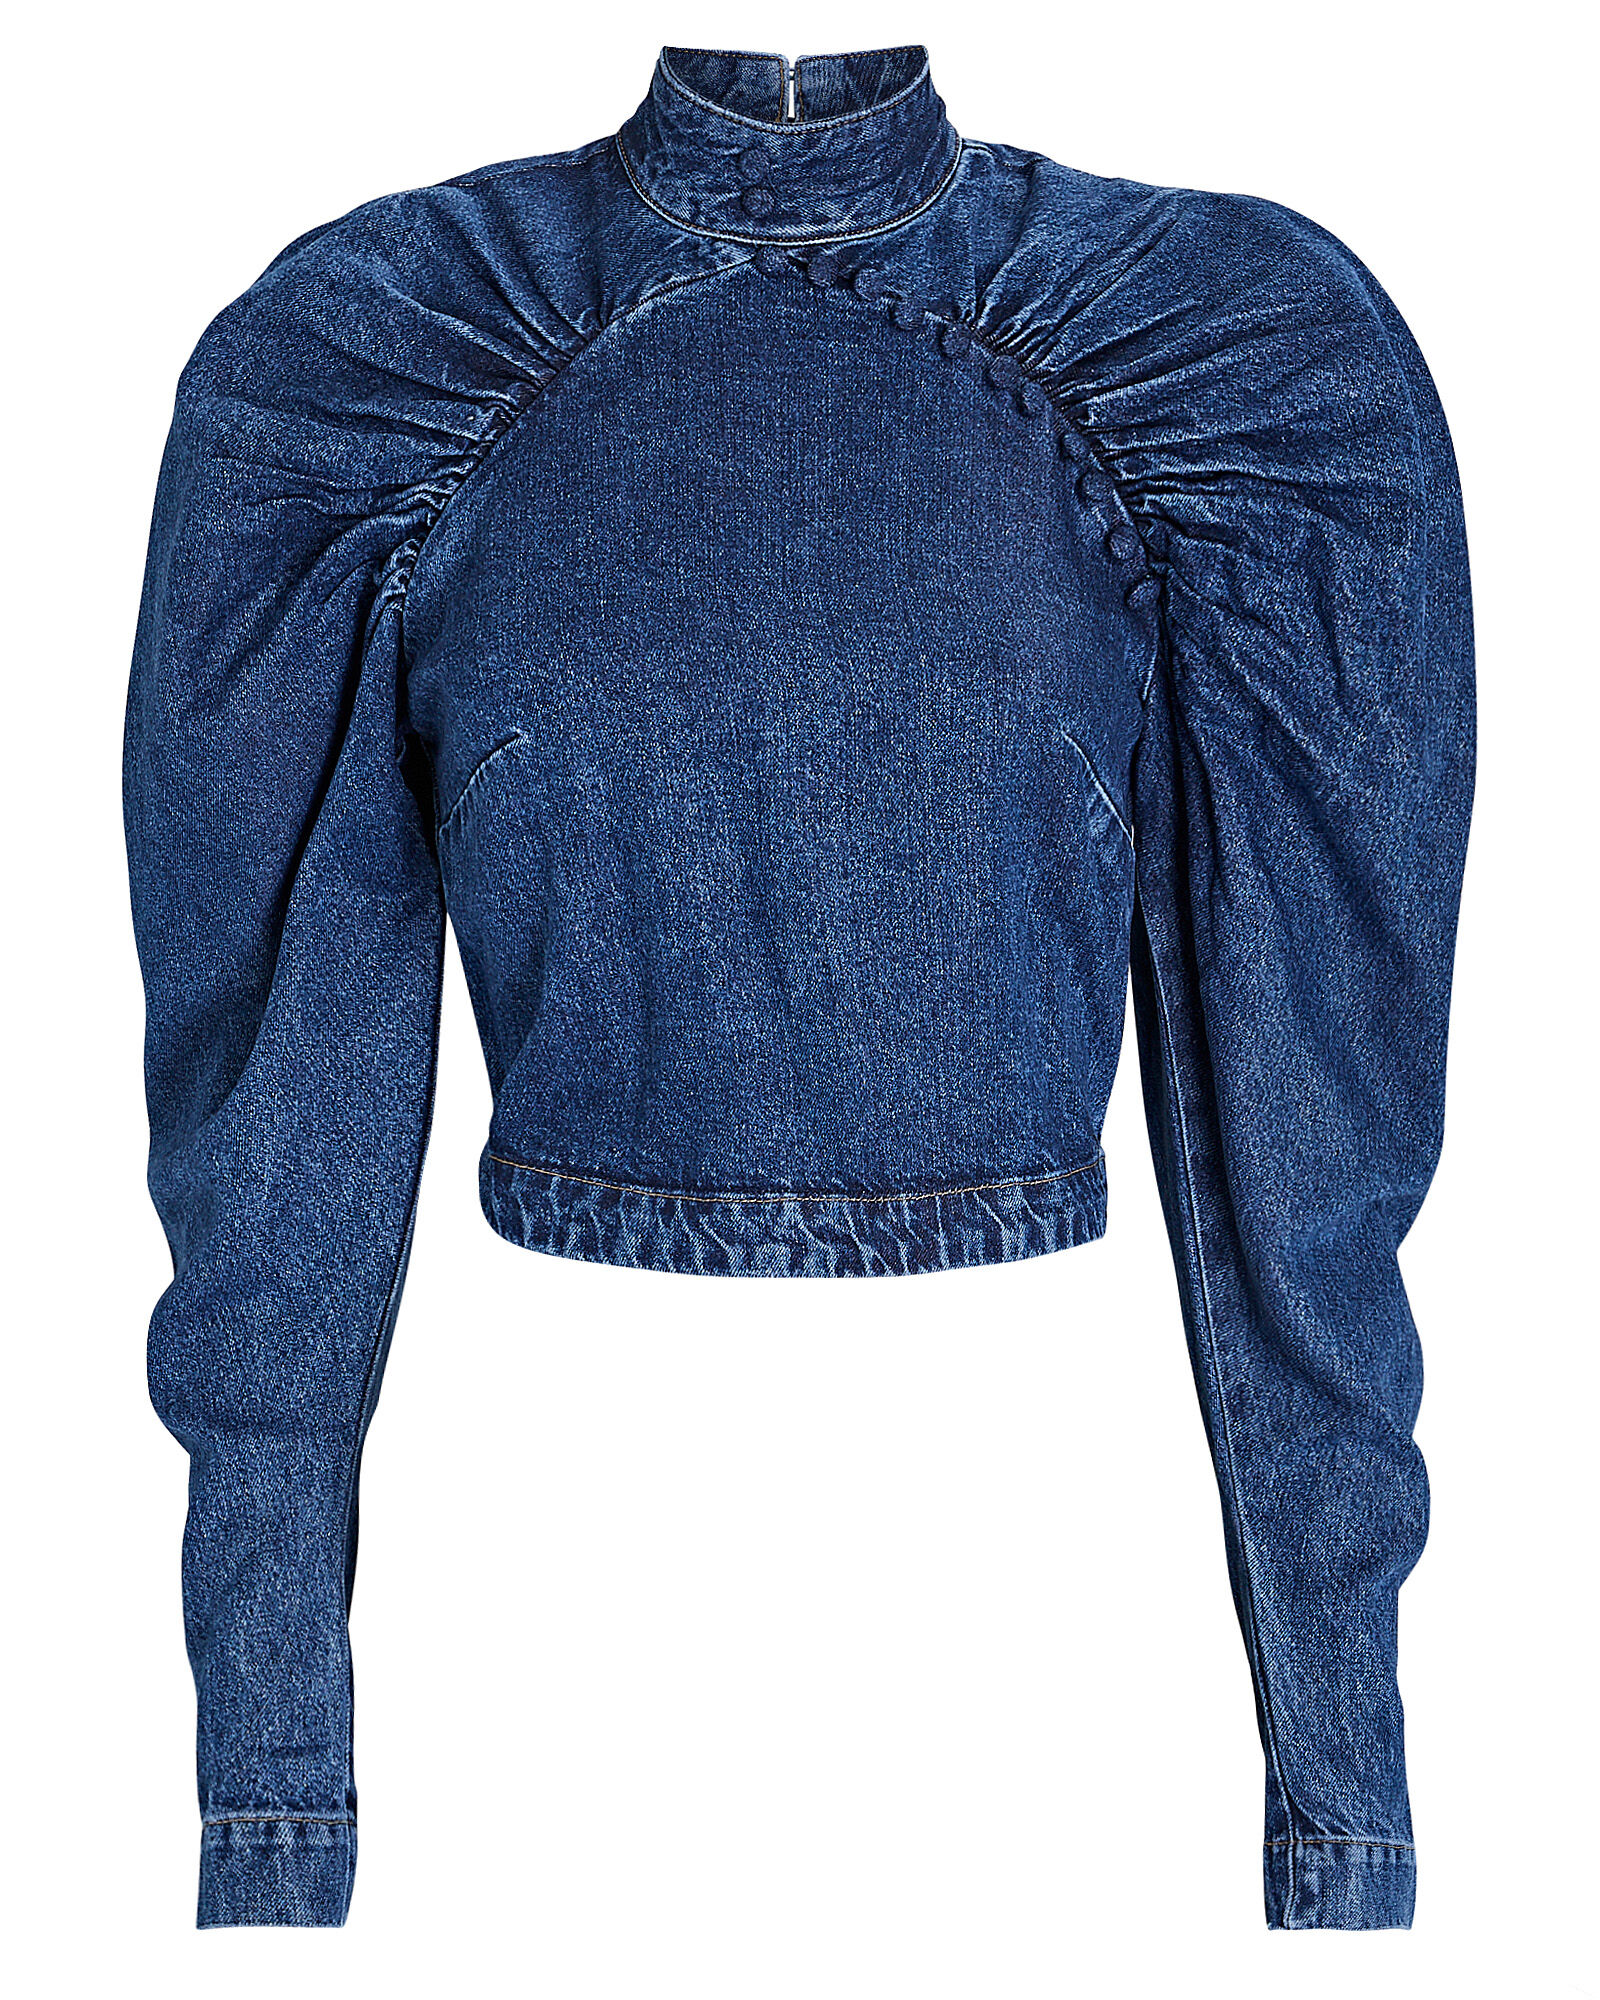 Kim Ruched Chambray Top, BLUE-MED, hi-res